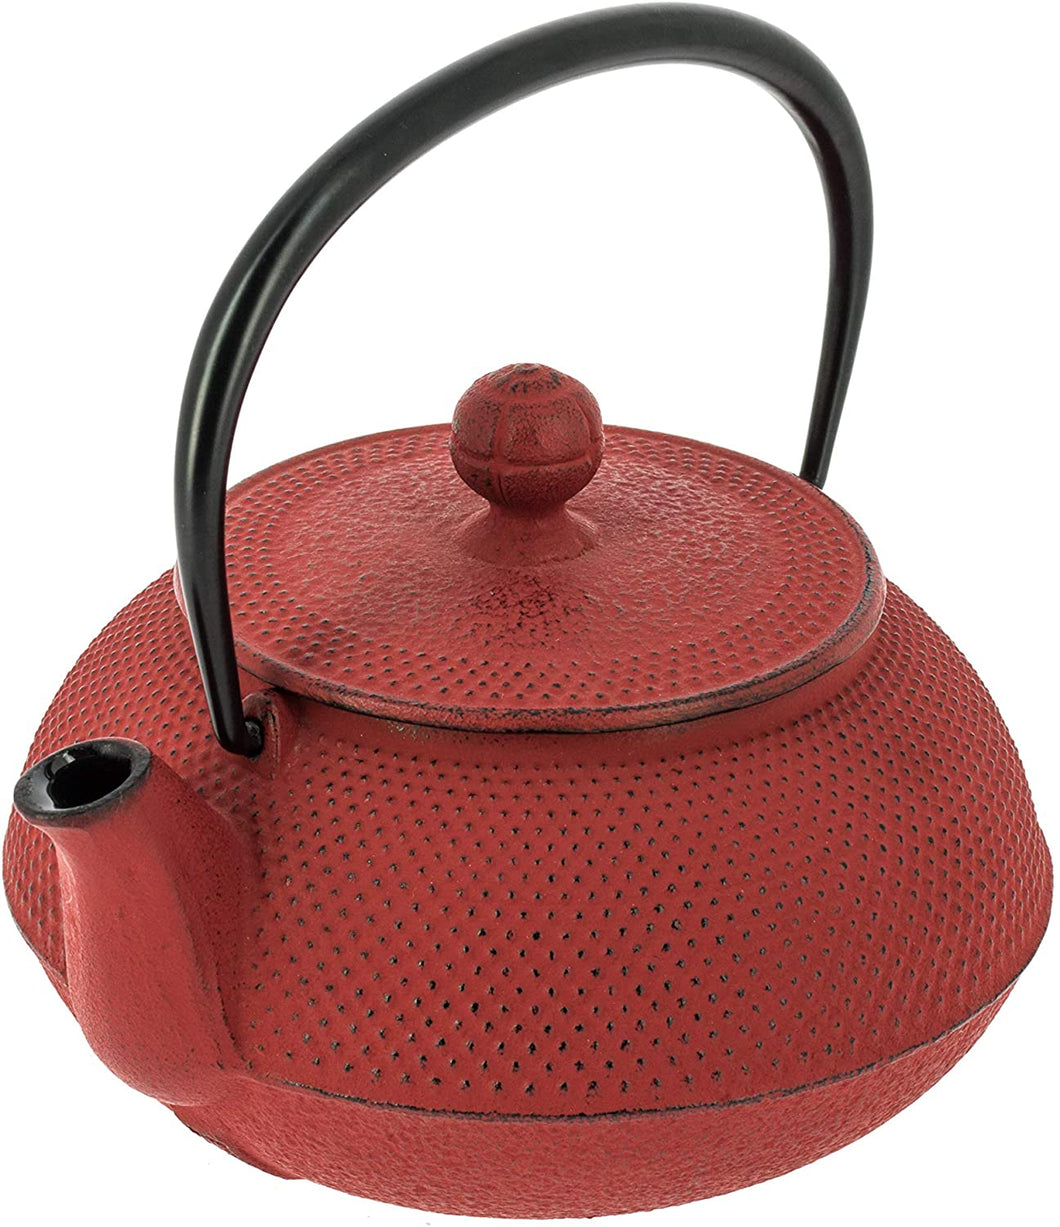 Traditional Red Cast Iron Teapot